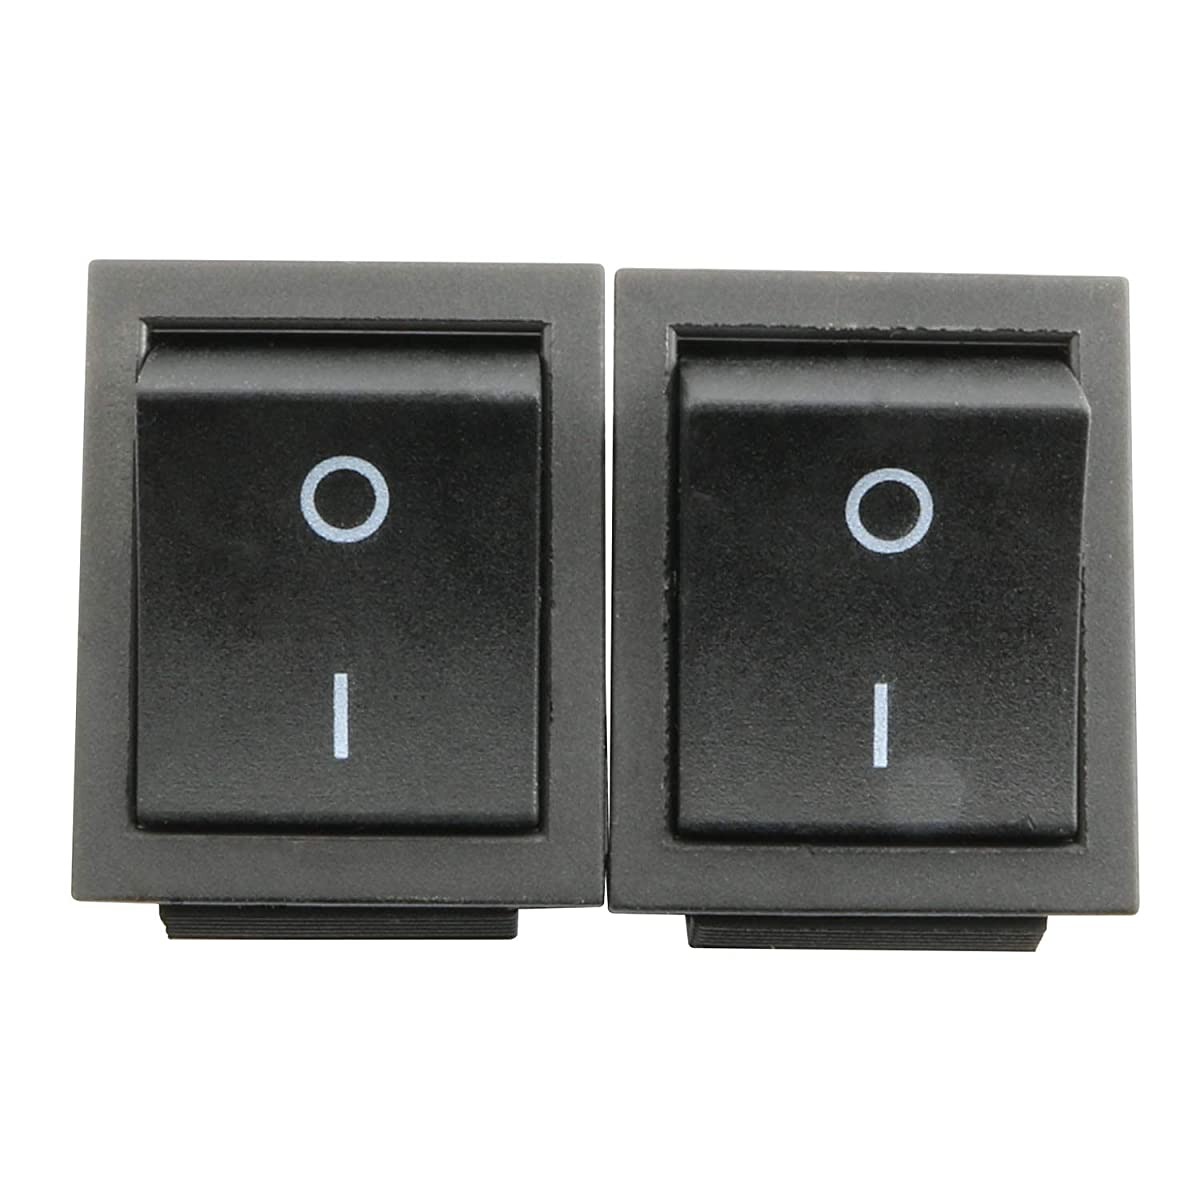 RuiLing 2-Pack DPST 2 Position 4Pin Boat Rocker Switch with Light 16A 250V Toggle Switches Snap ON/Off for Car Dash Dashboard Truck Home Red Button